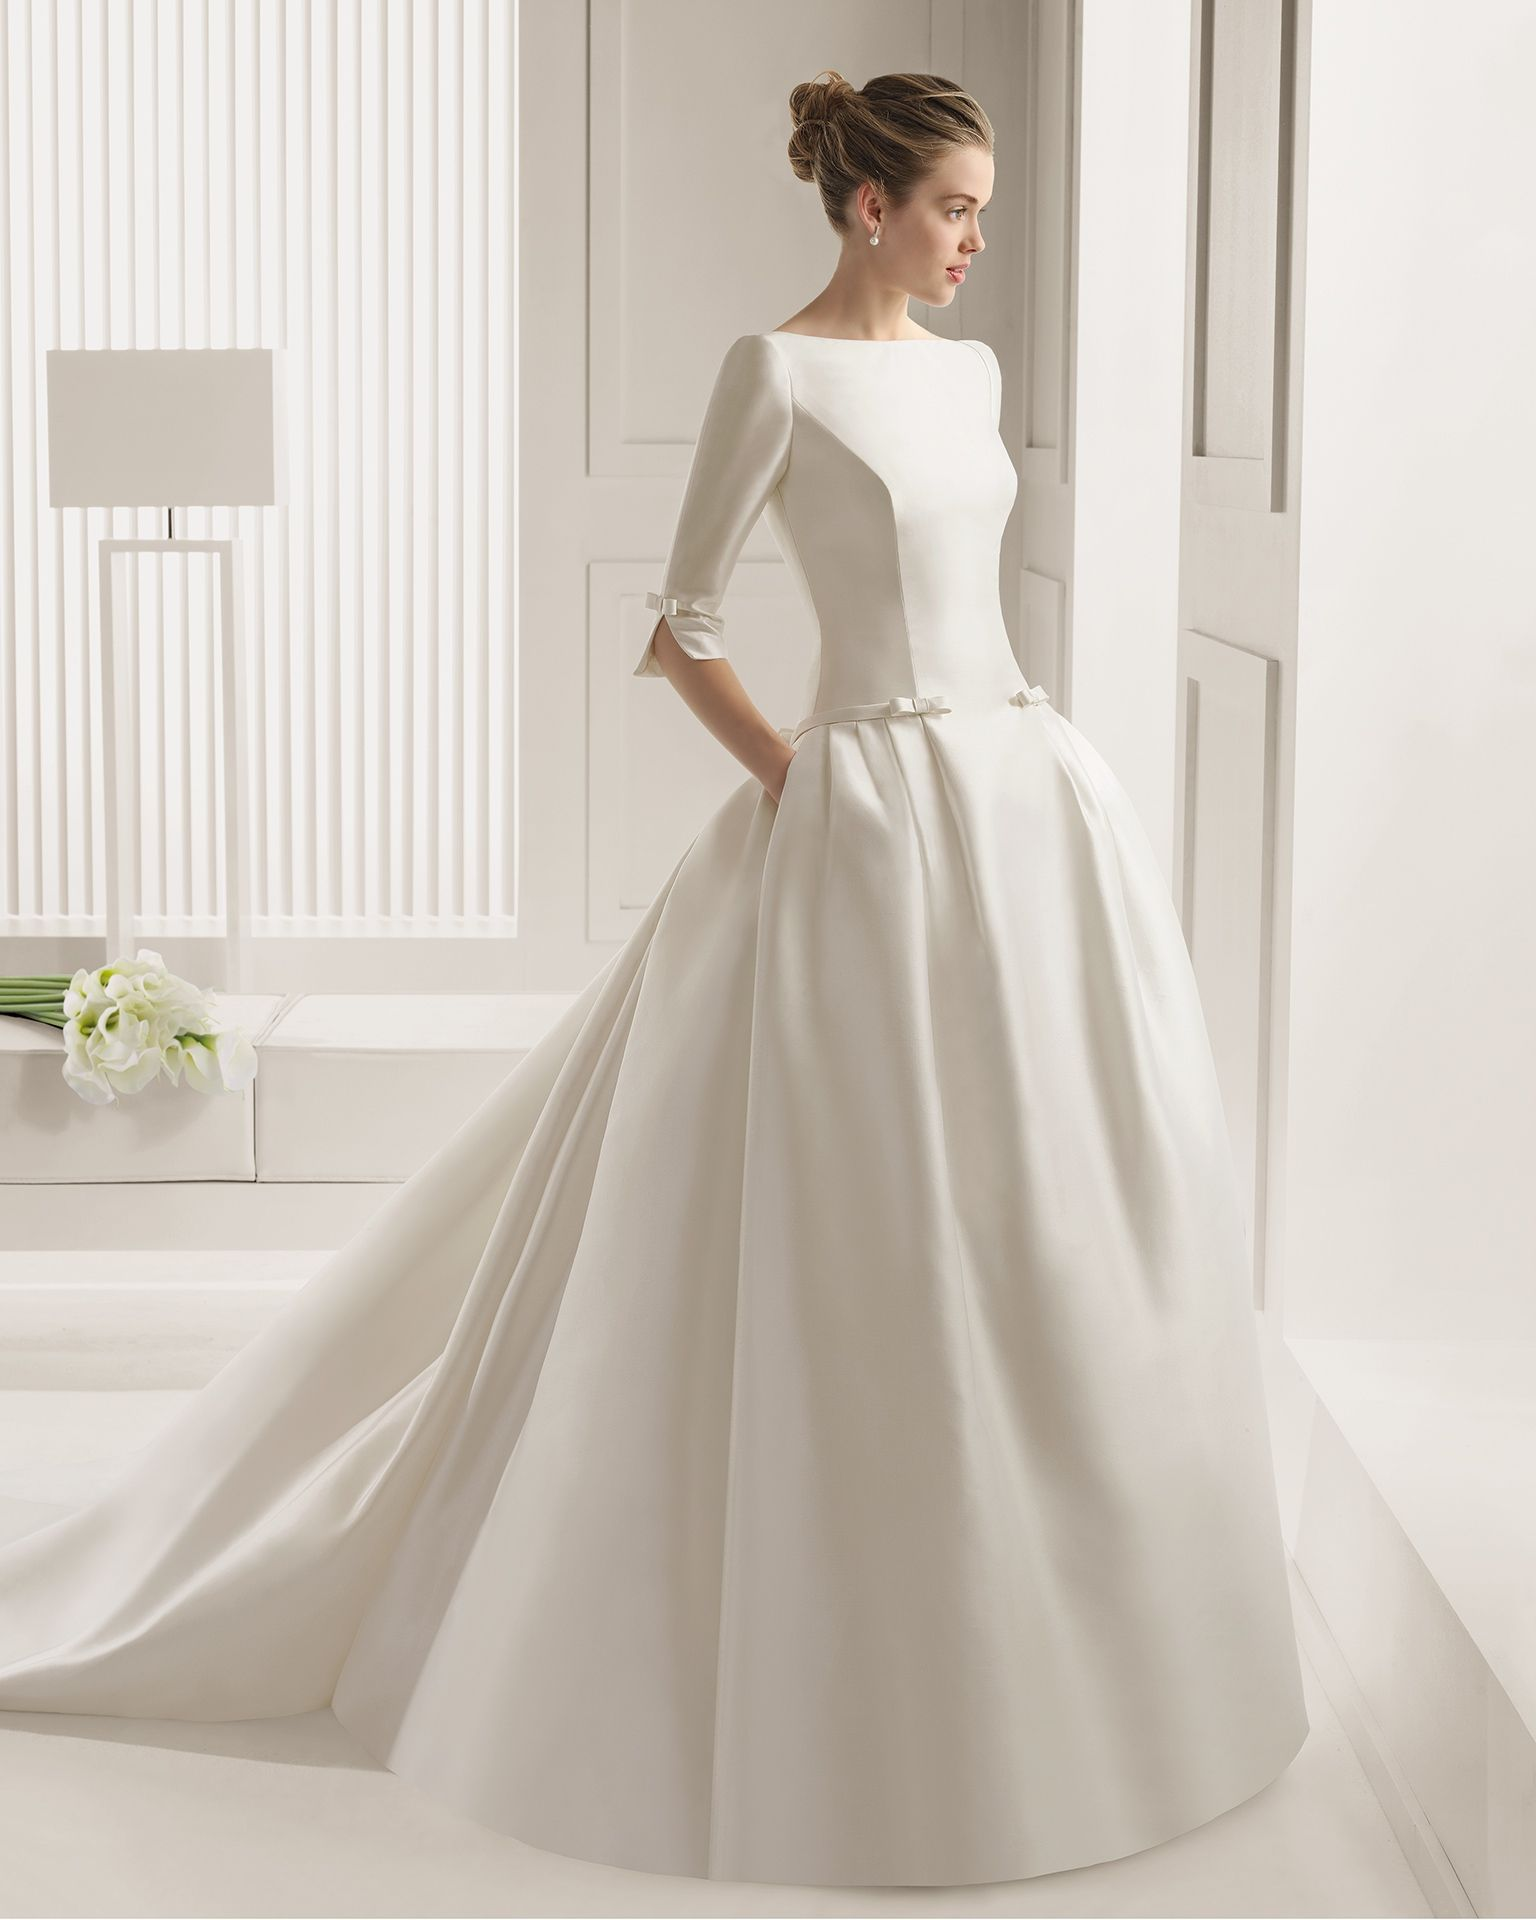 Audrey Hepburn Inspired Wedding Dresses Google Search